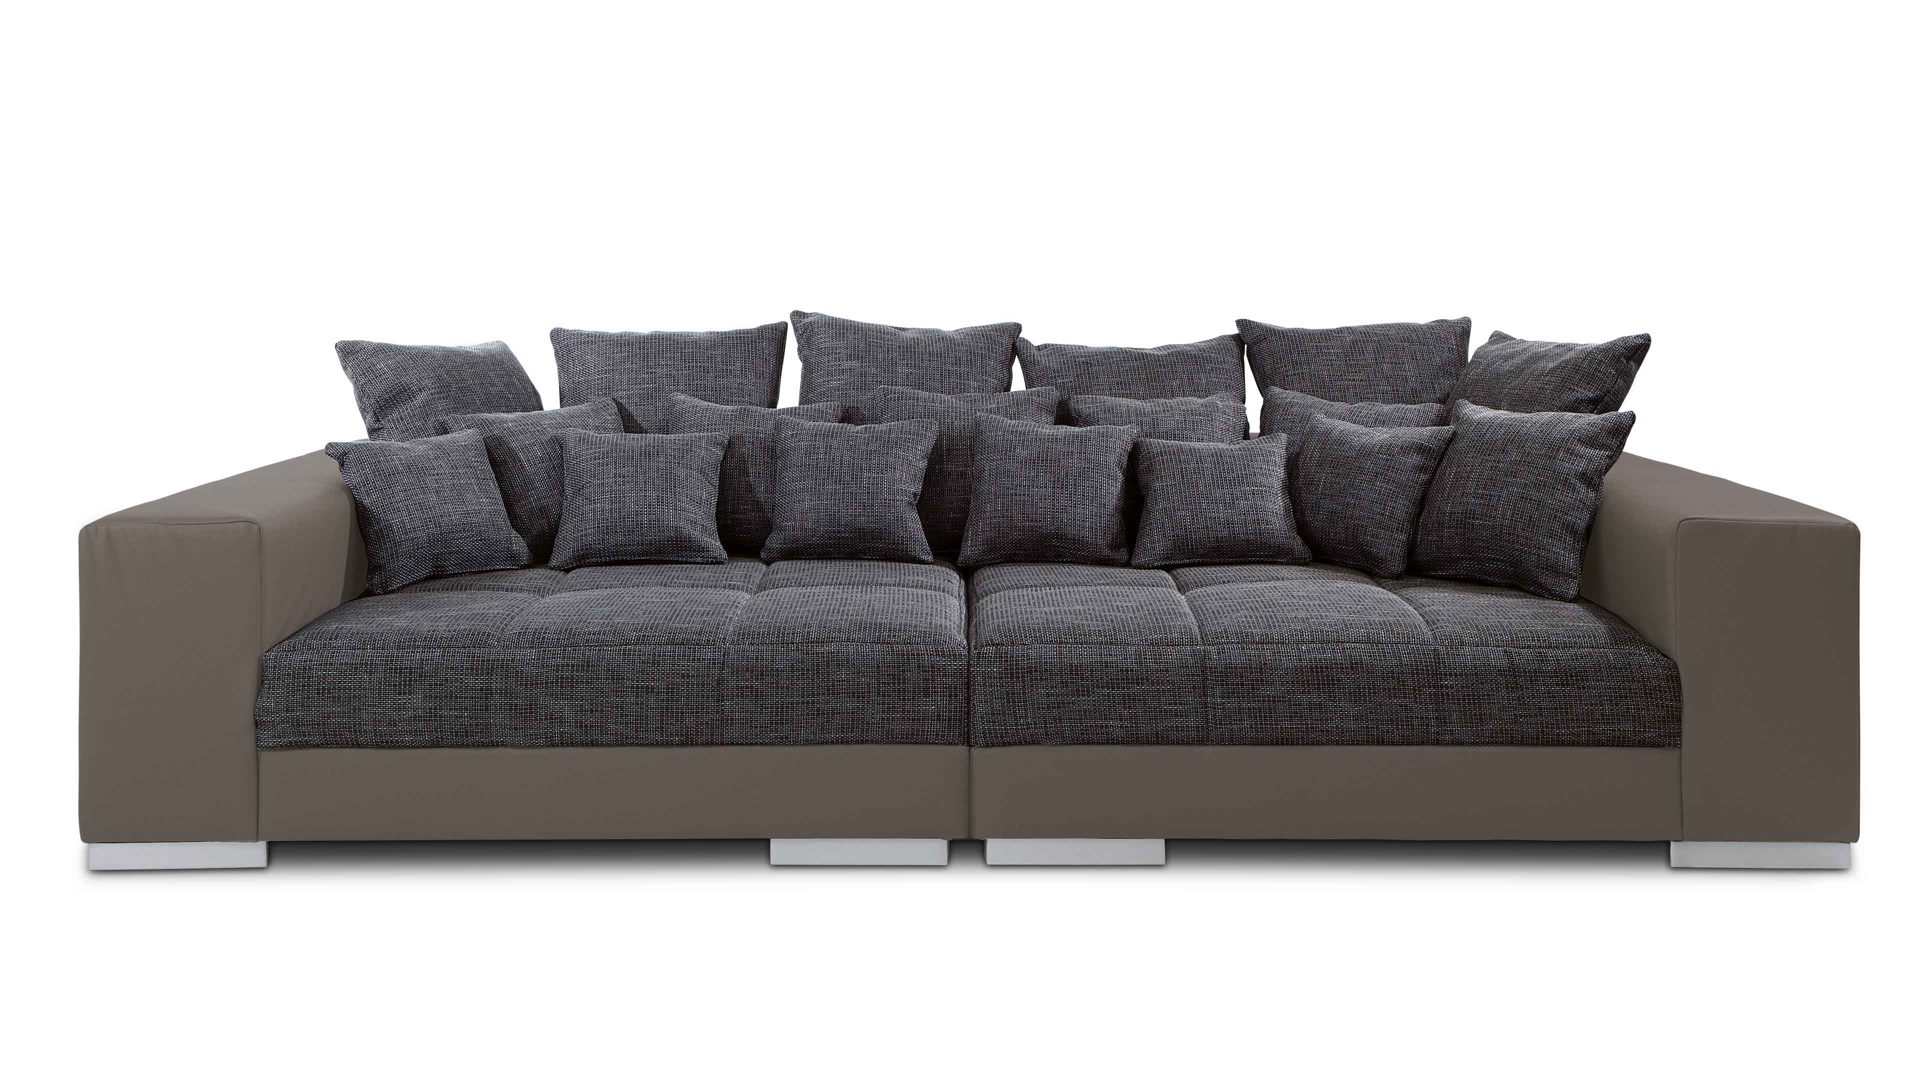 Big Sofa Valeska Sofa Hocker Grau Interesting Sofa Grau Weiss Sofa Mann Mobilia